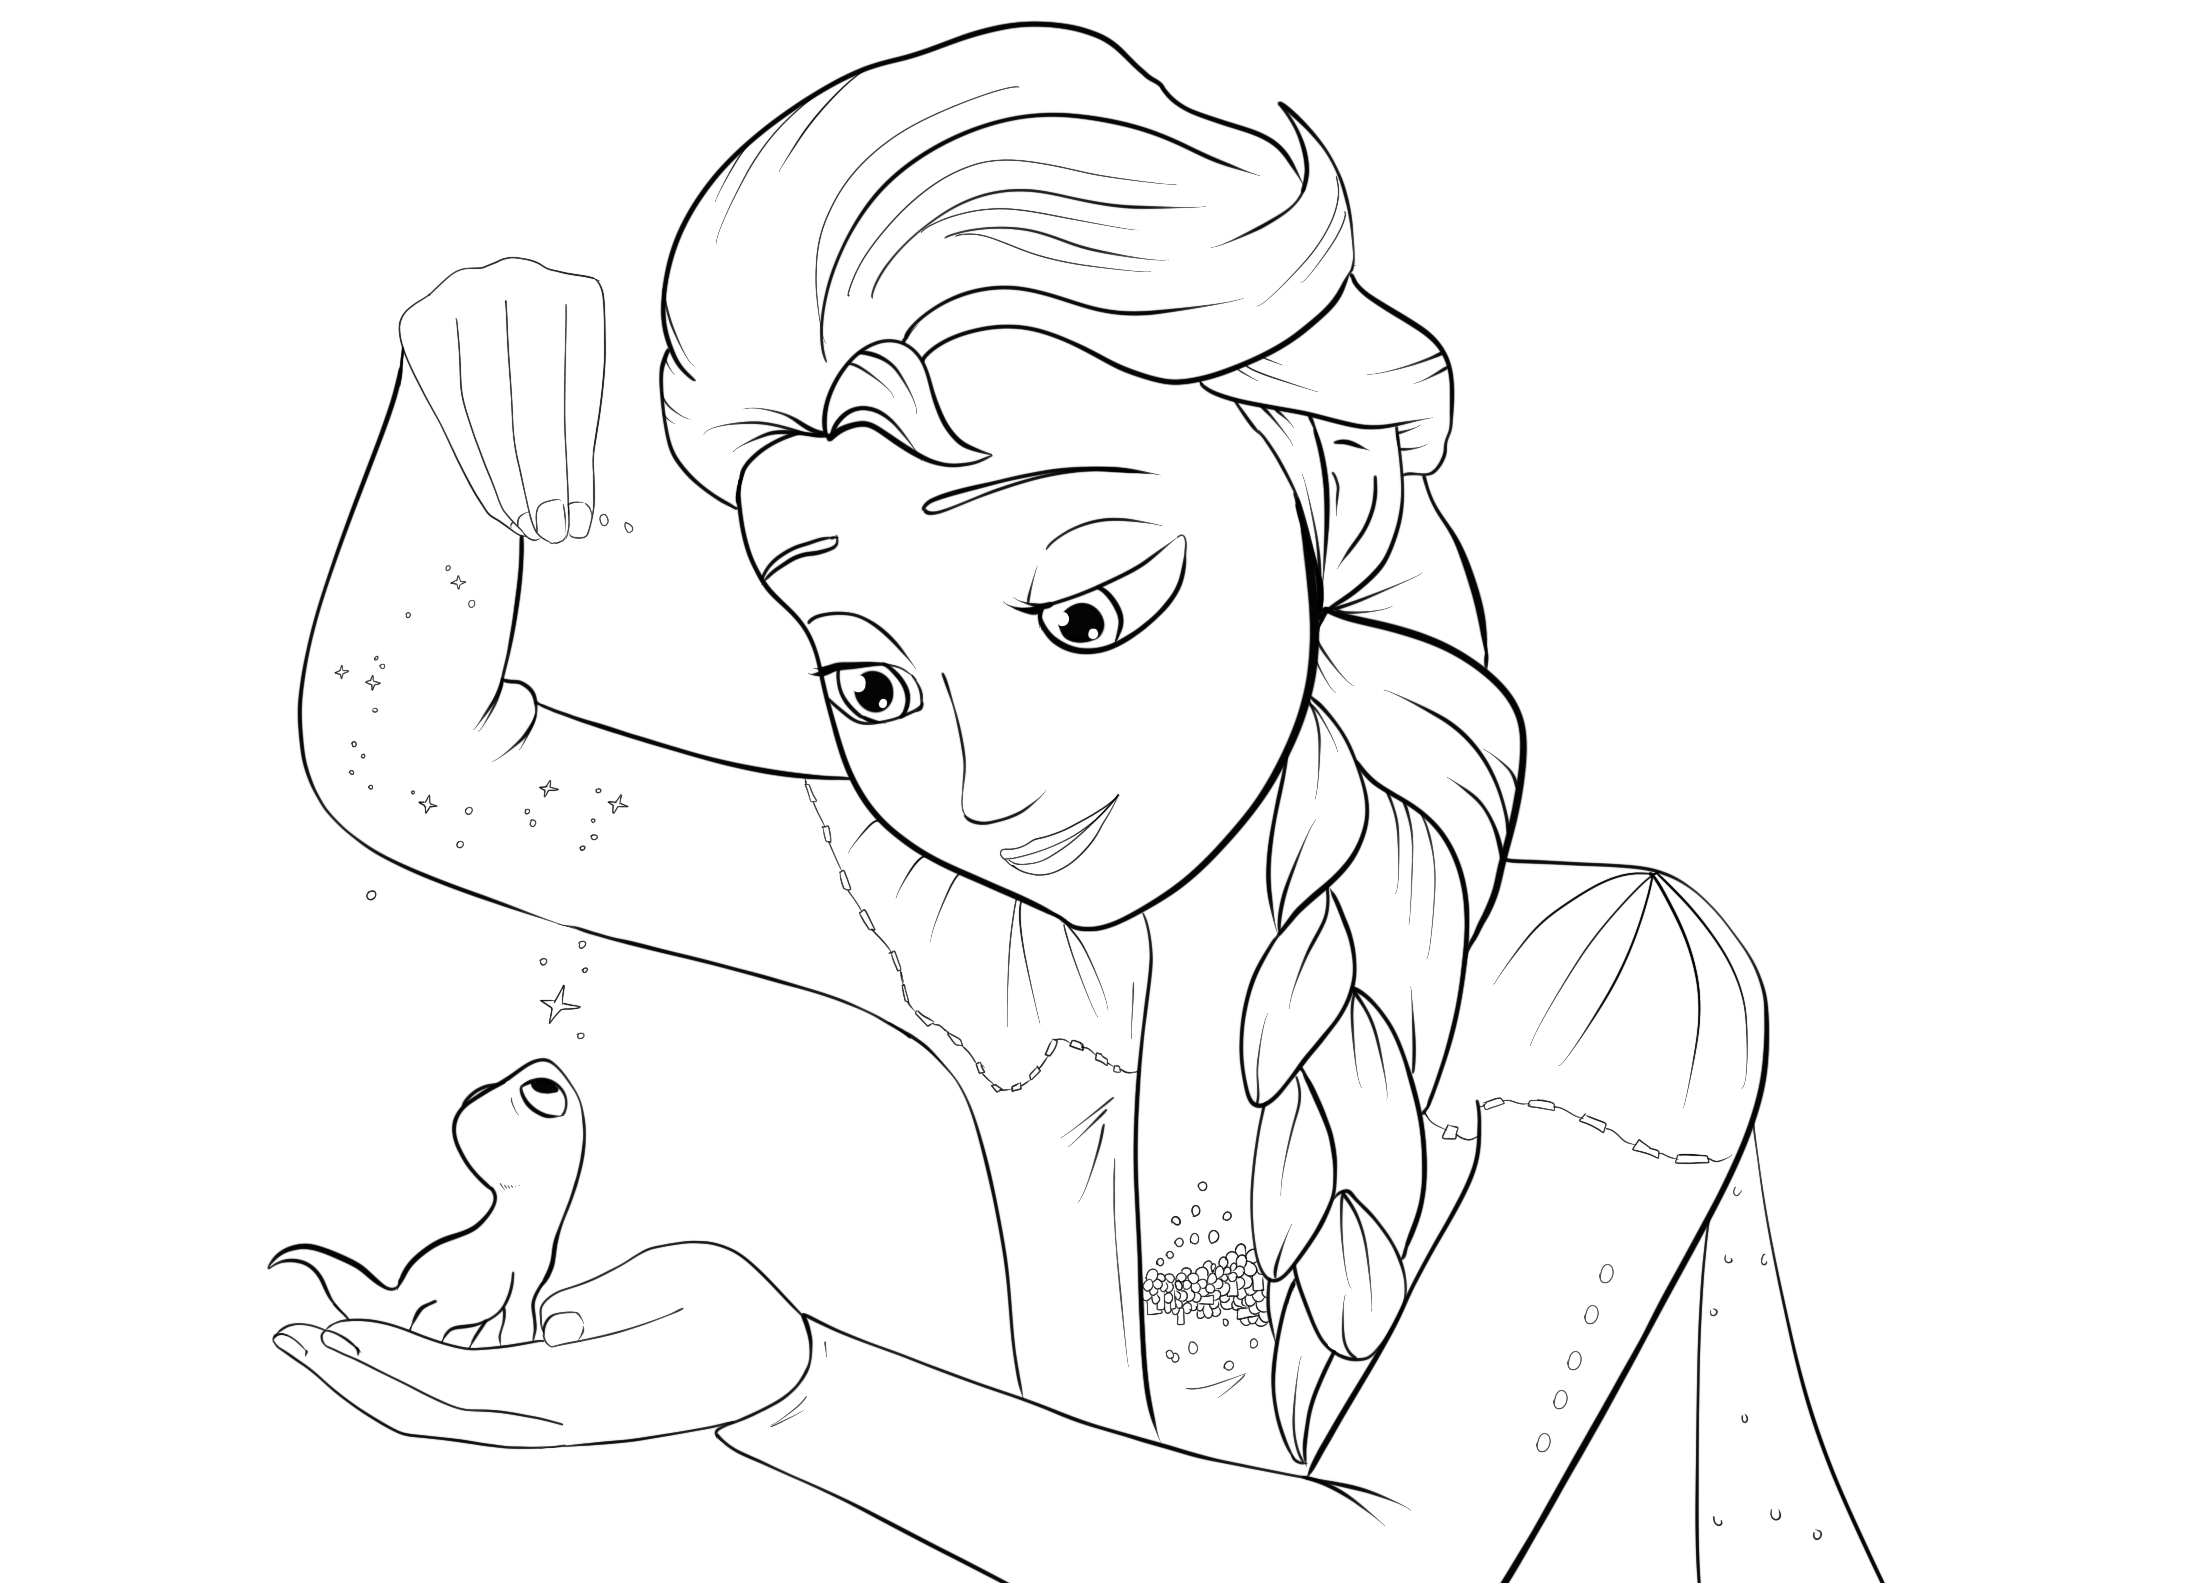 Welcome To Coloring Download Frozen Coloring Pages Frozen Coloring Princess Coloring Pages